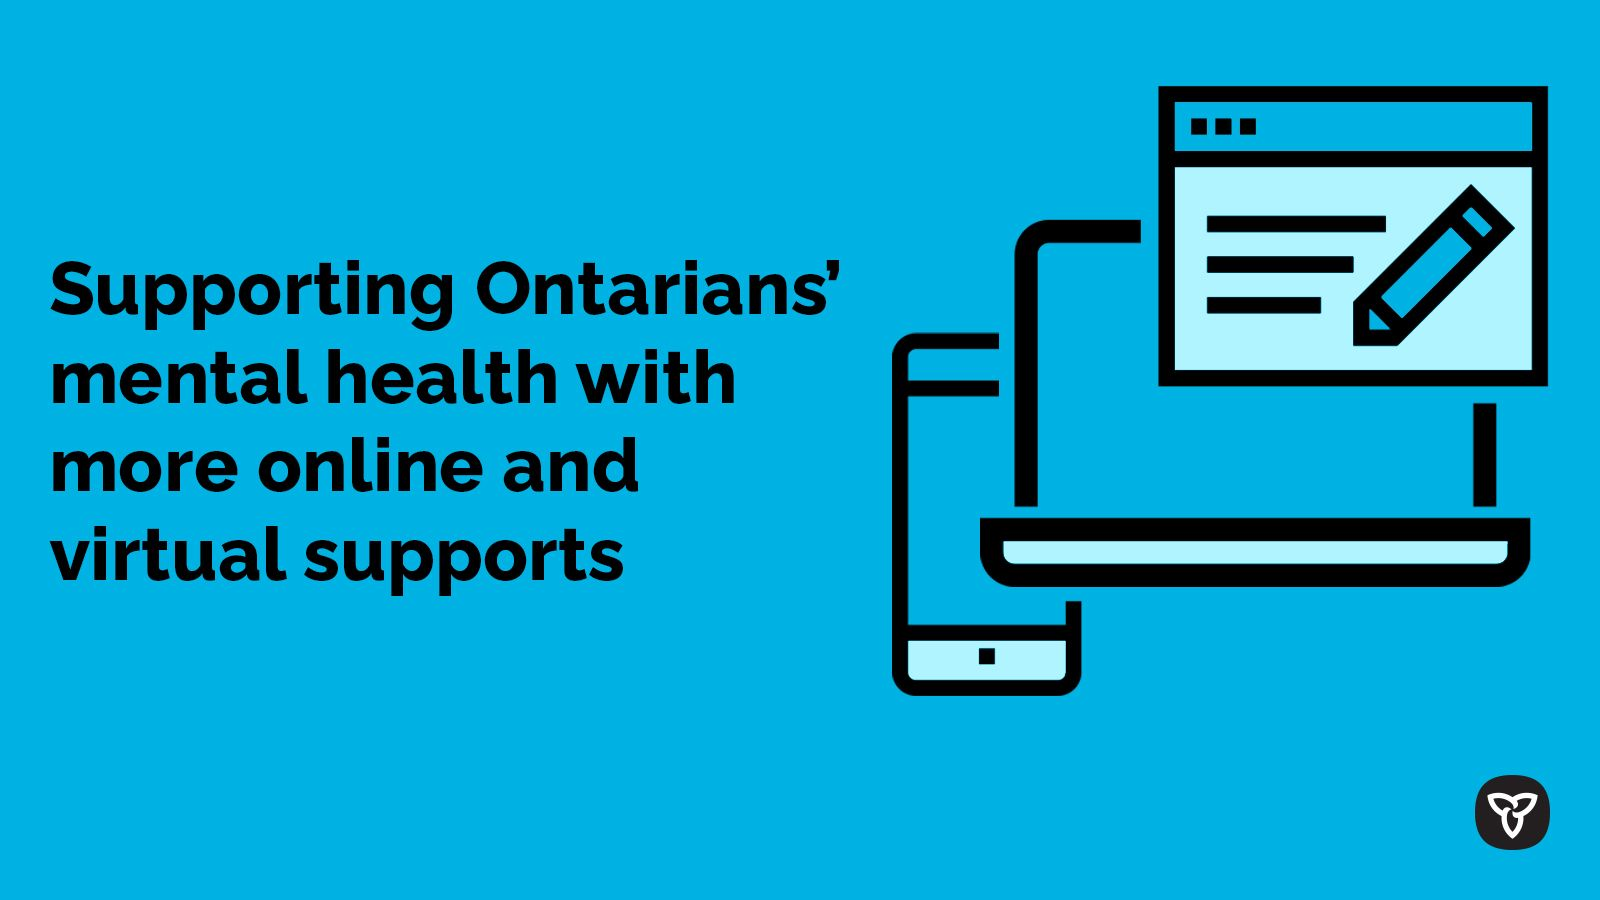 Ontario Expanding Innovative Mental Health and Addictions Services